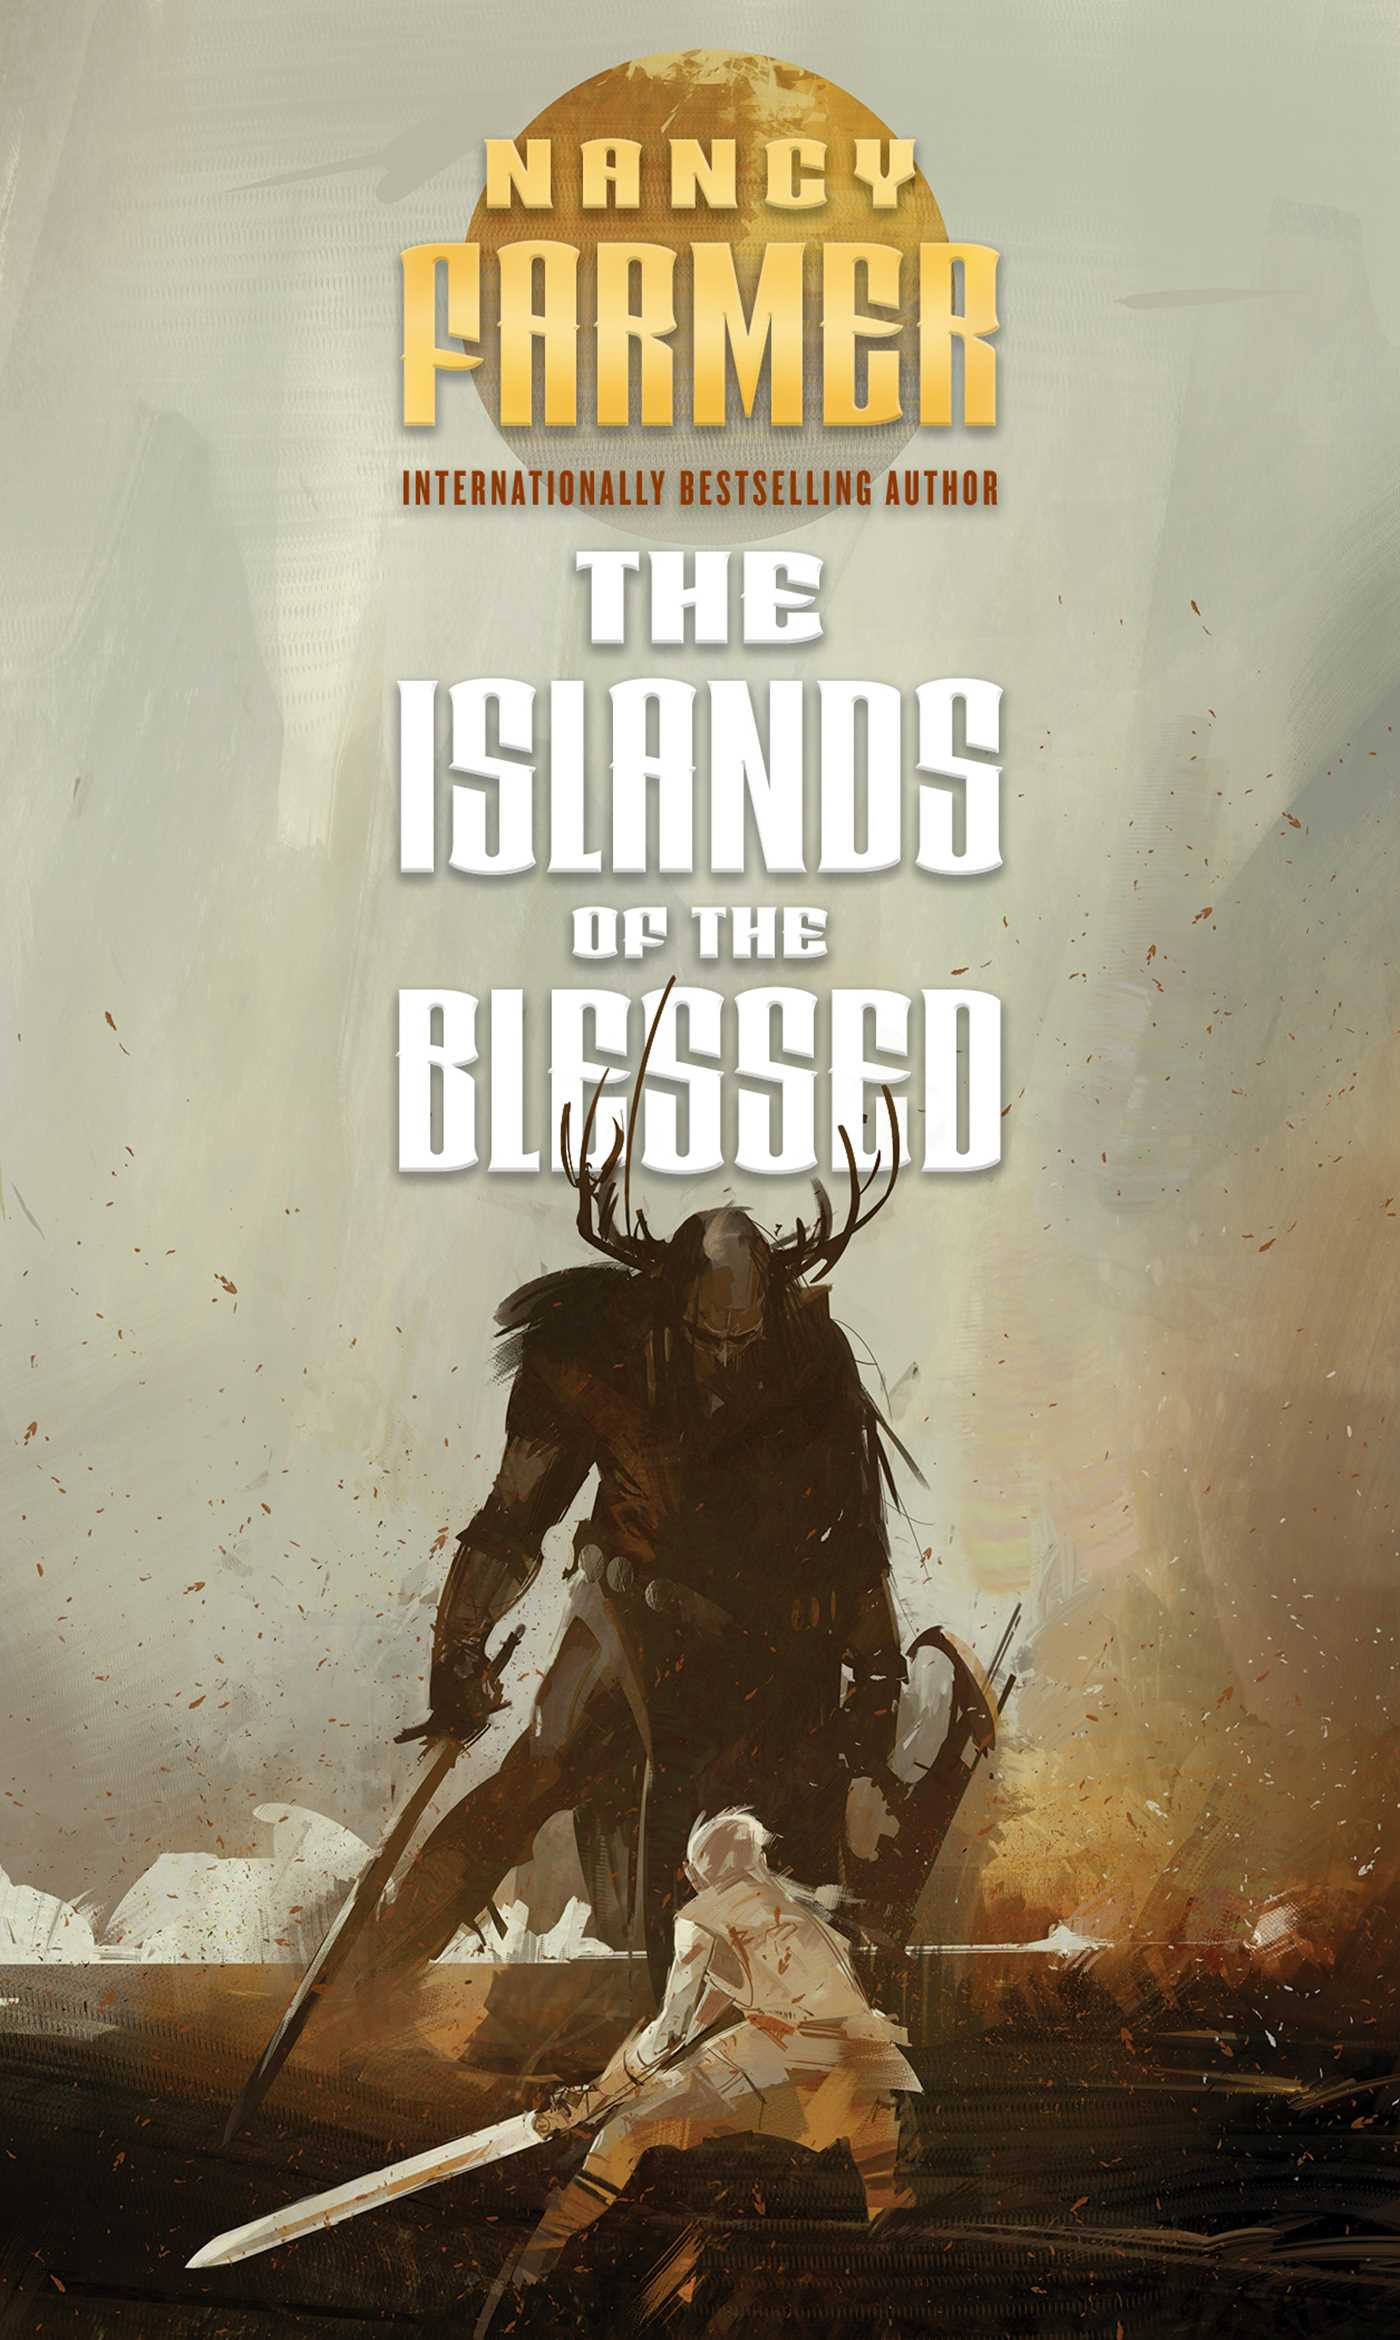 The islands of the blessed 9781439160473 hr